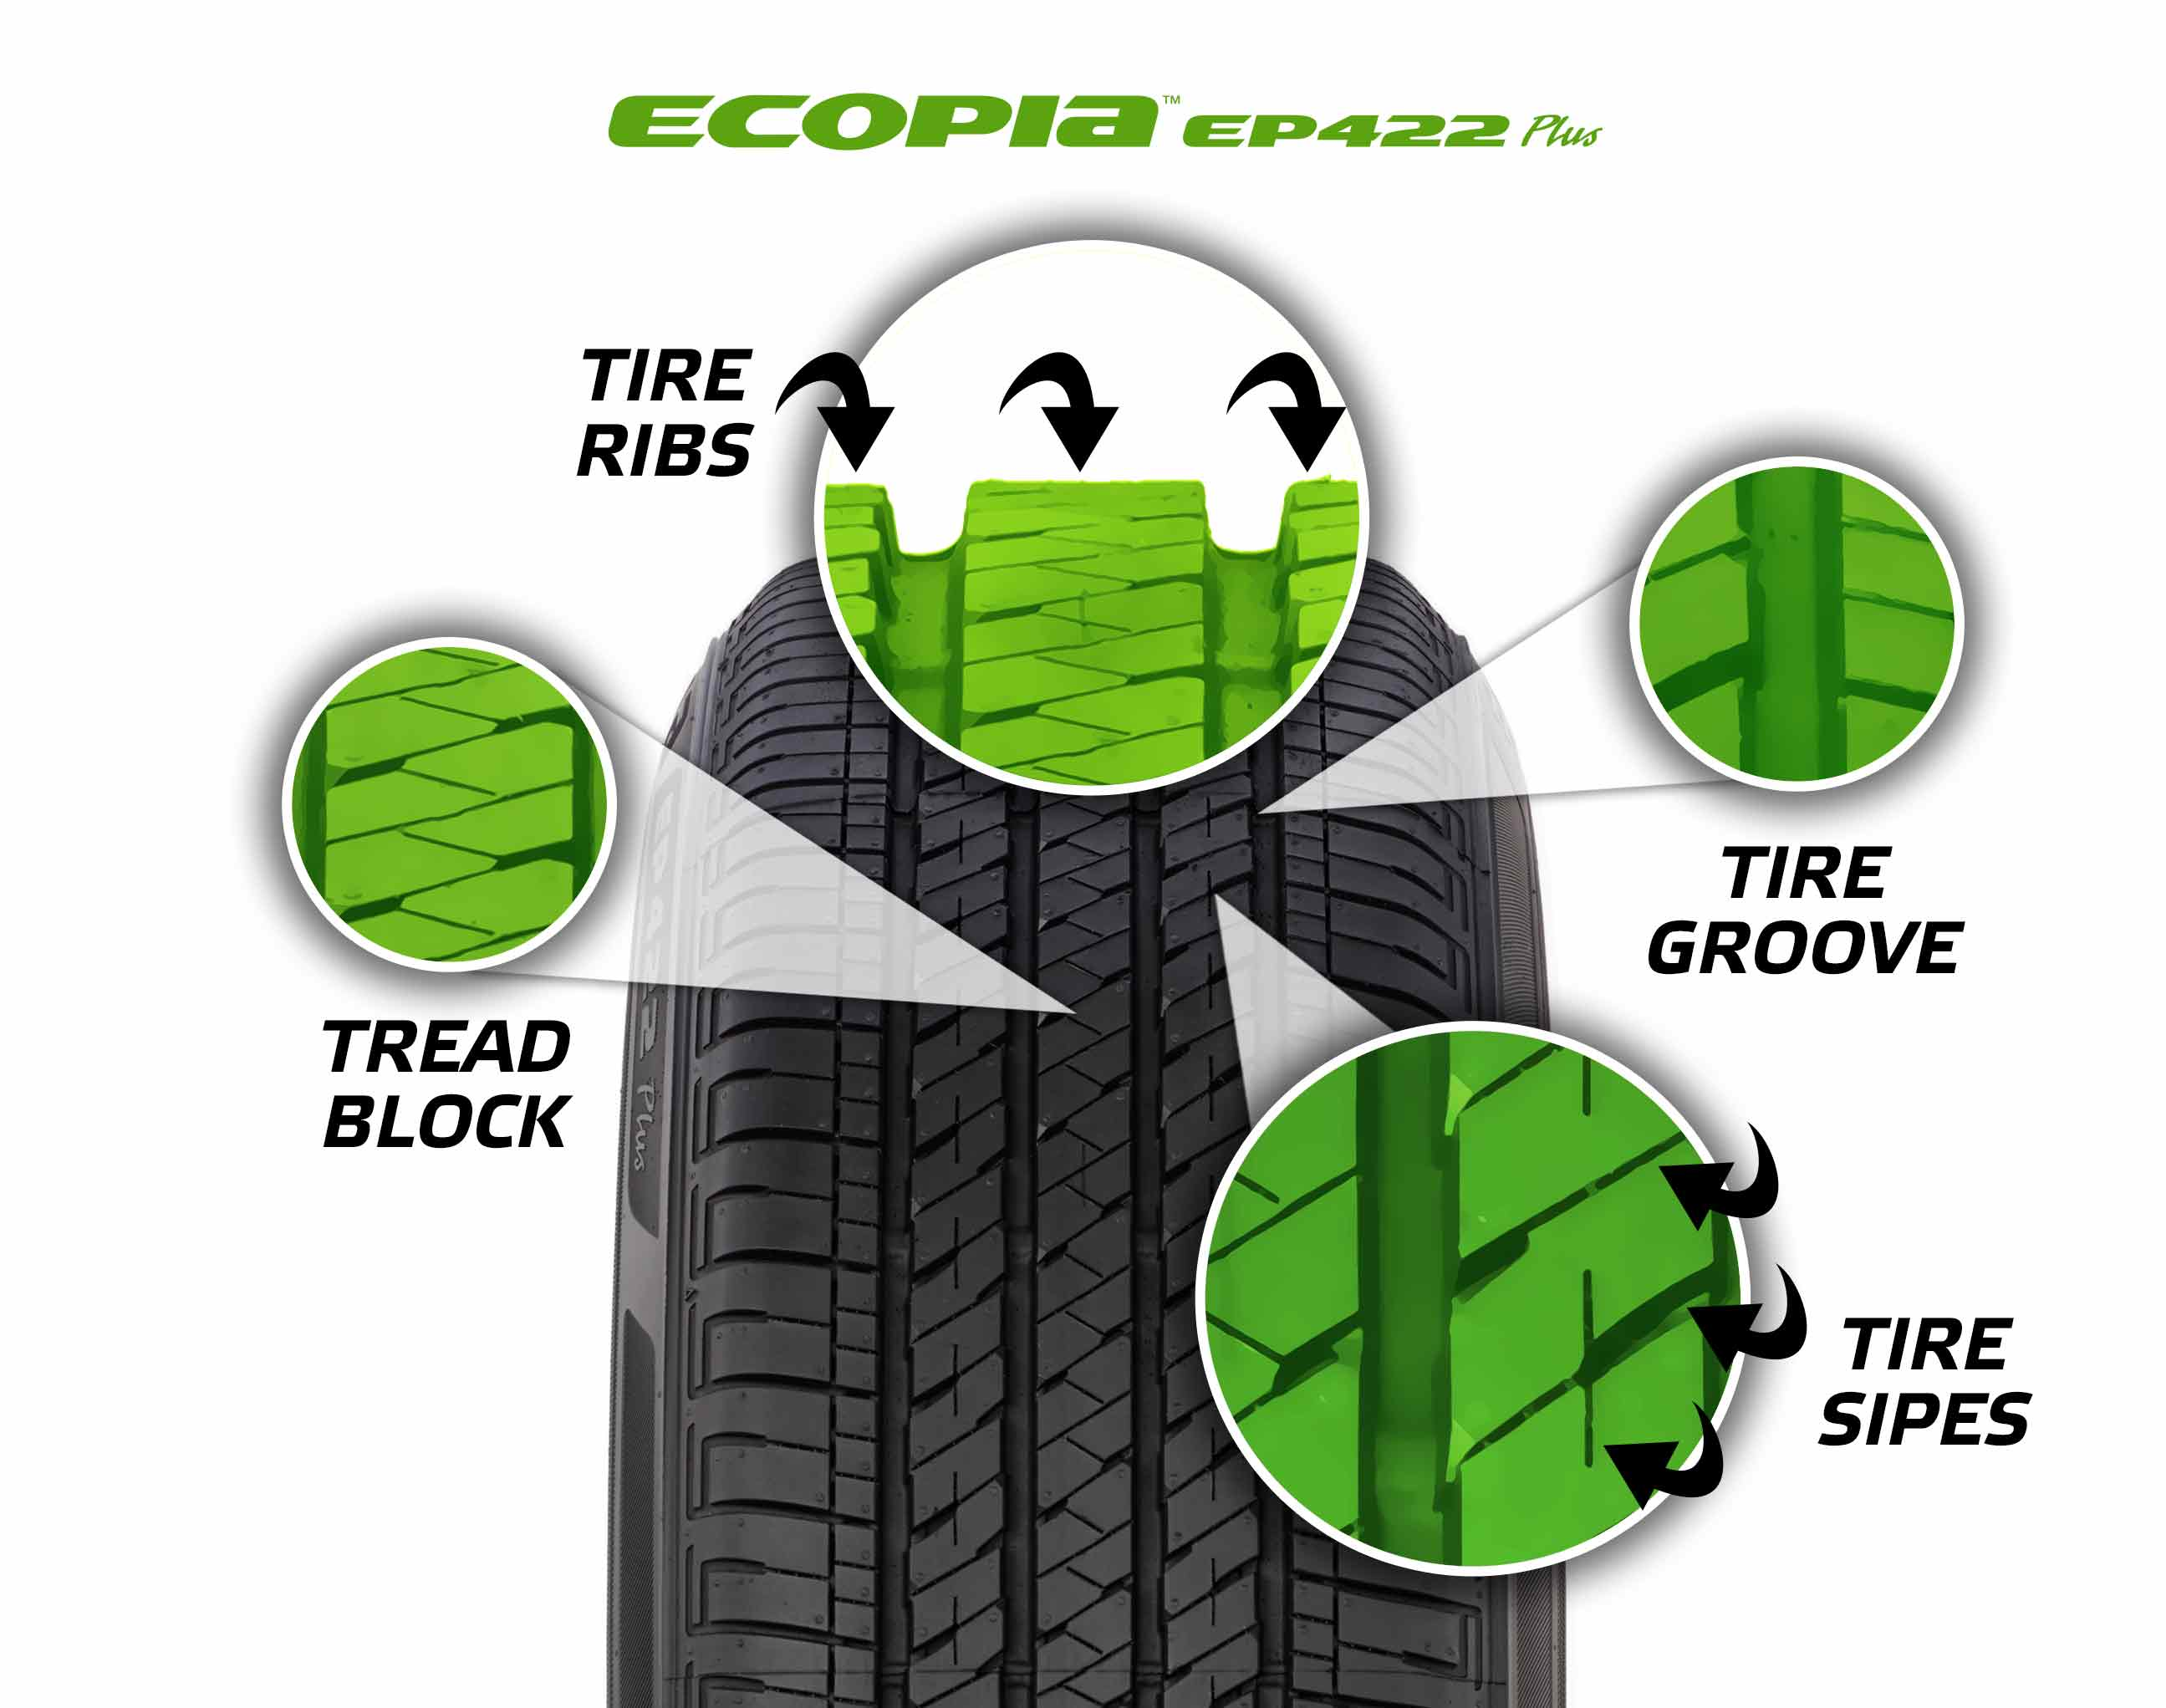 The Elements of Tire Tread Patterns